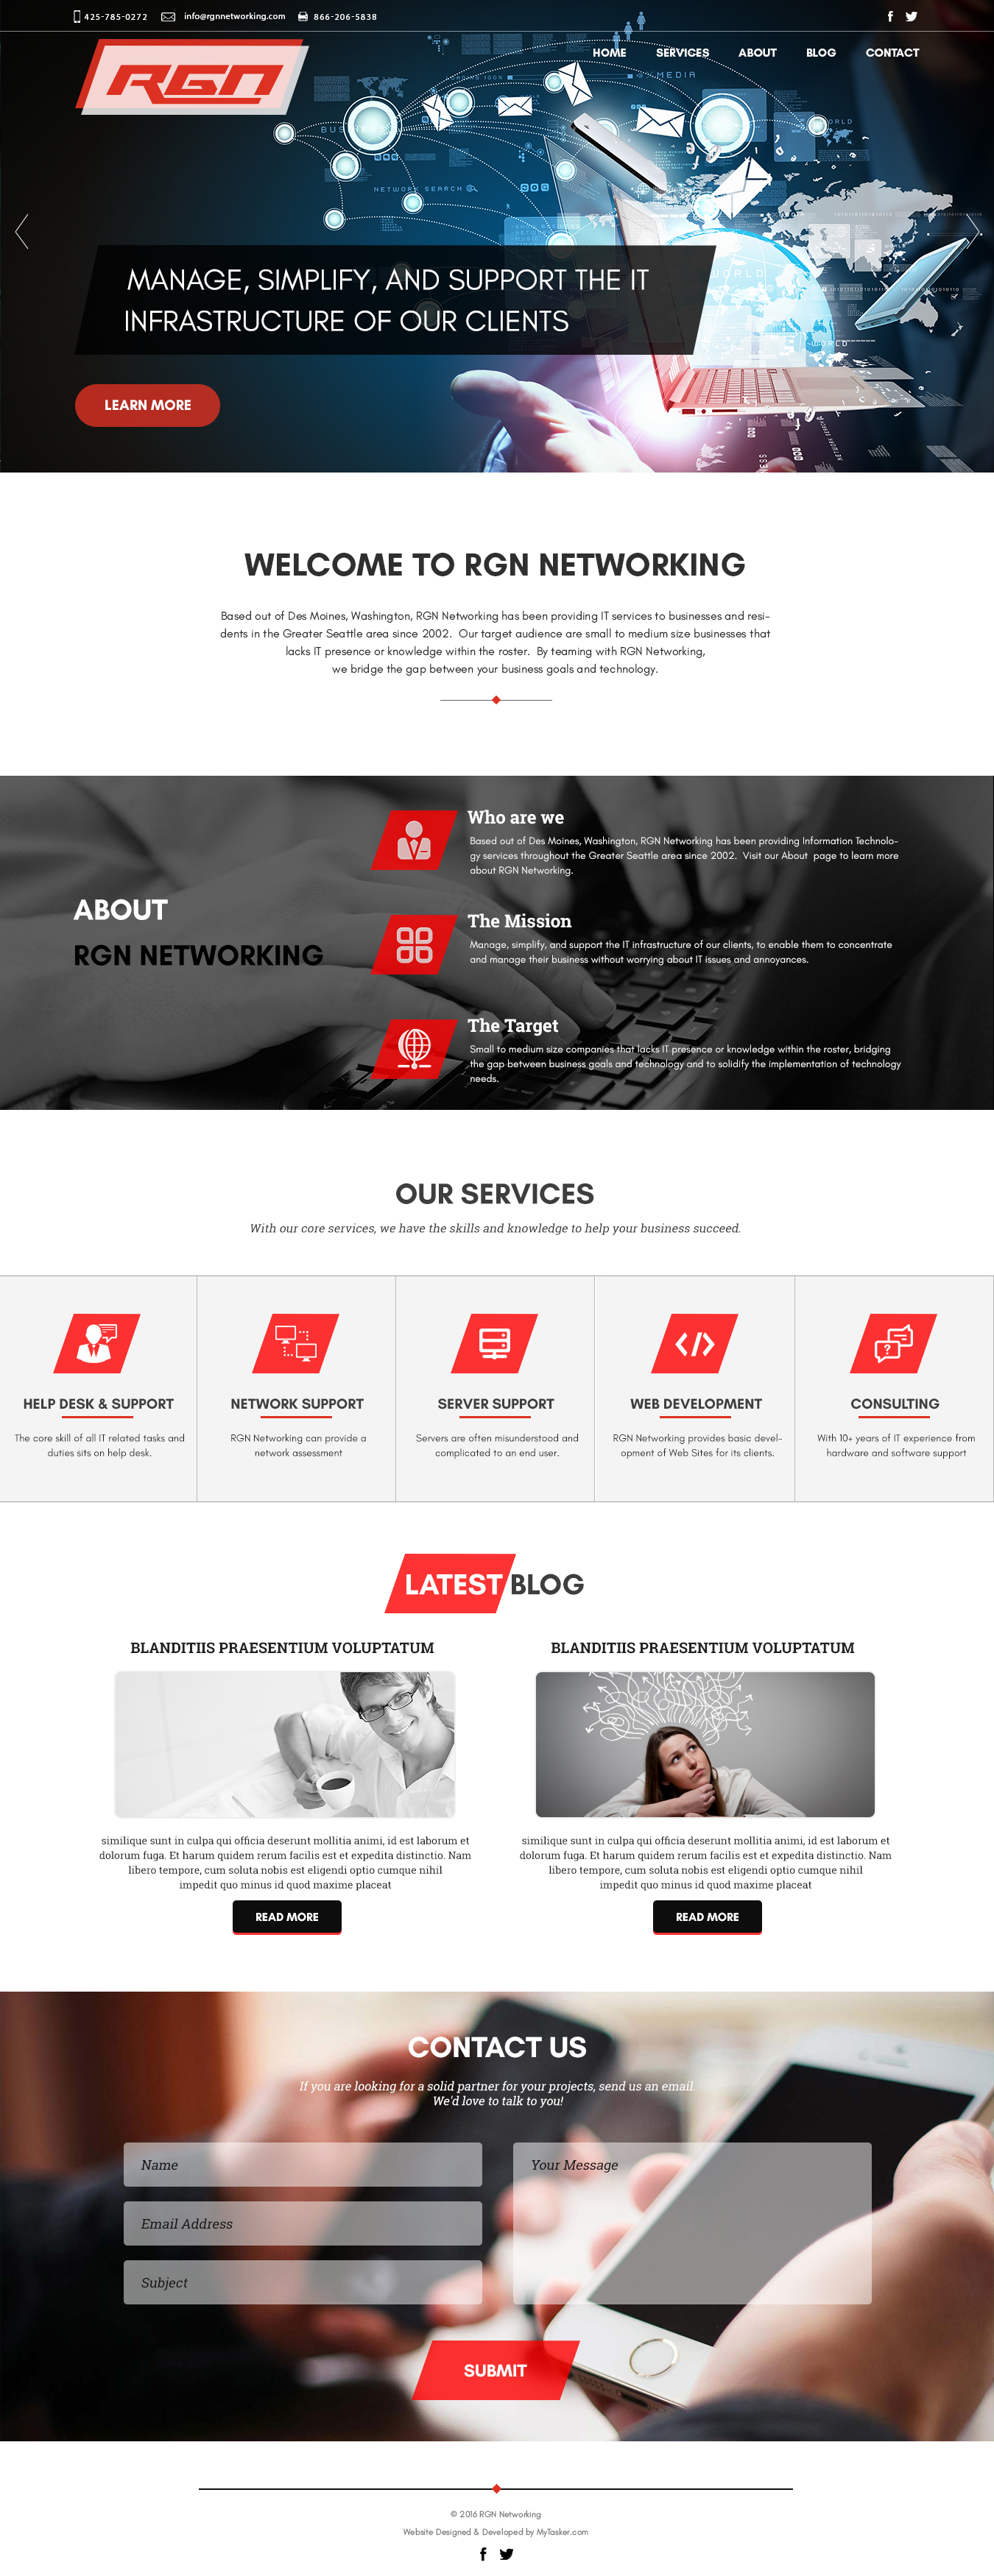 Hire Affordable Web Design And Development Services Company